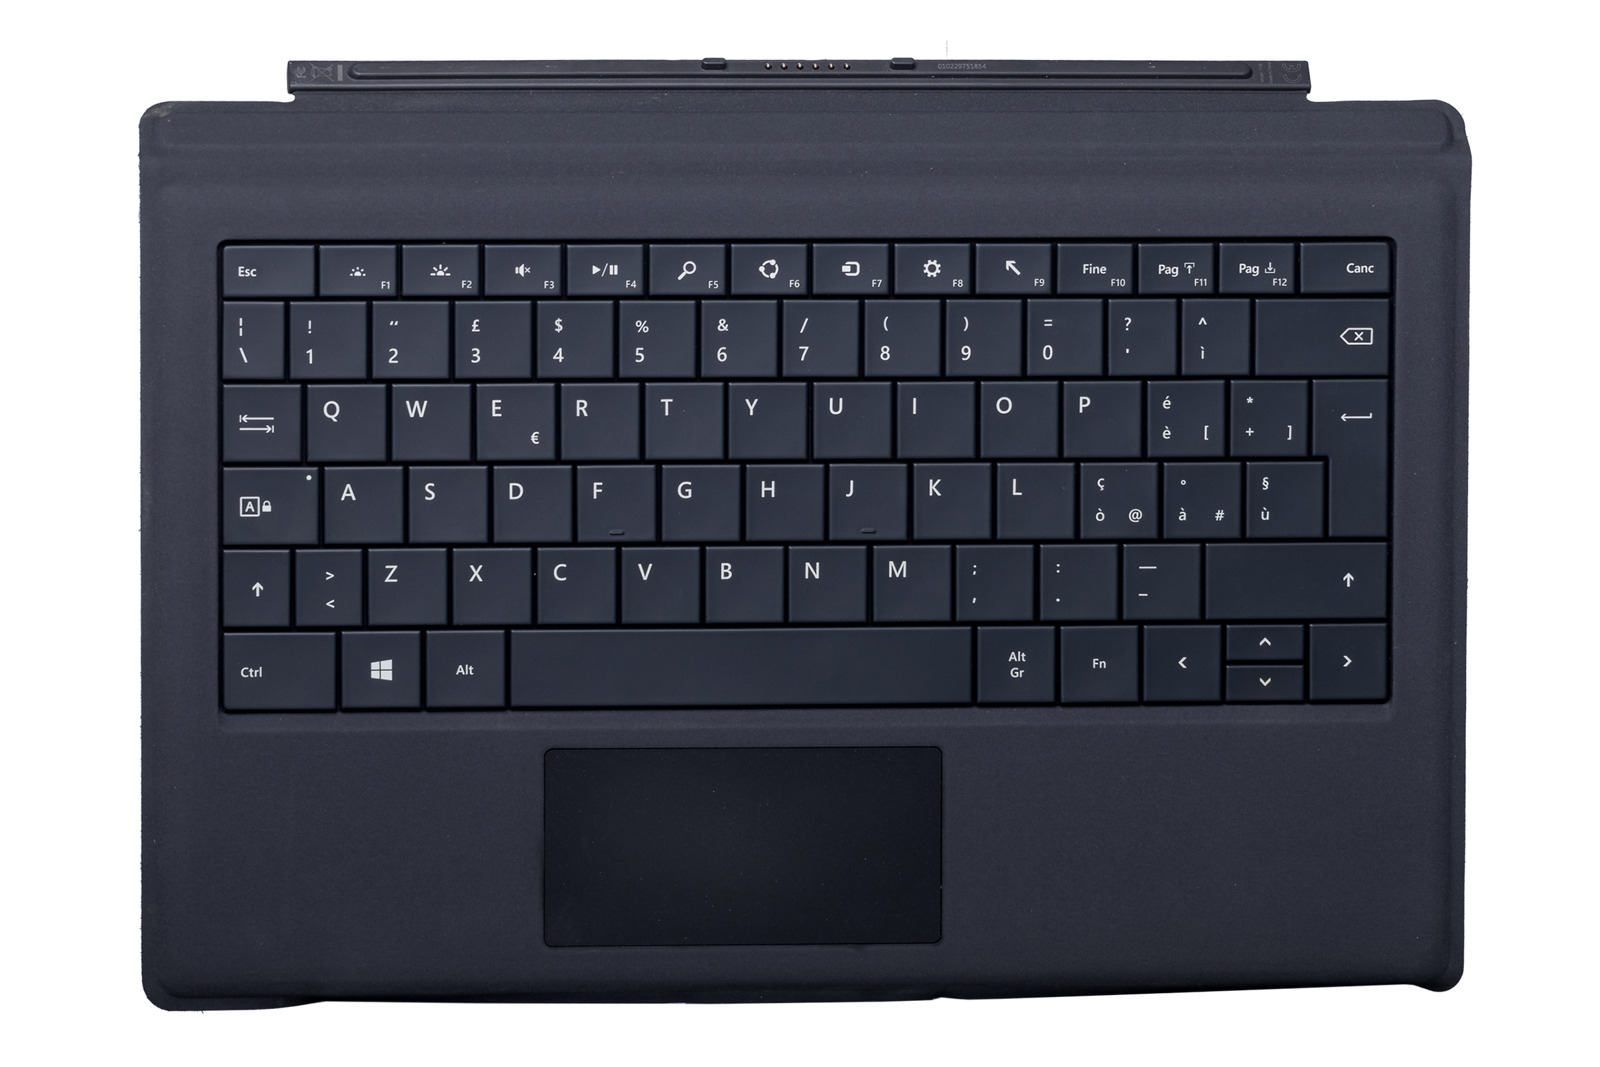 Keyboard Microsoft Surface Type Cover Pro 3 Black QWERTY (Italian) Grade B